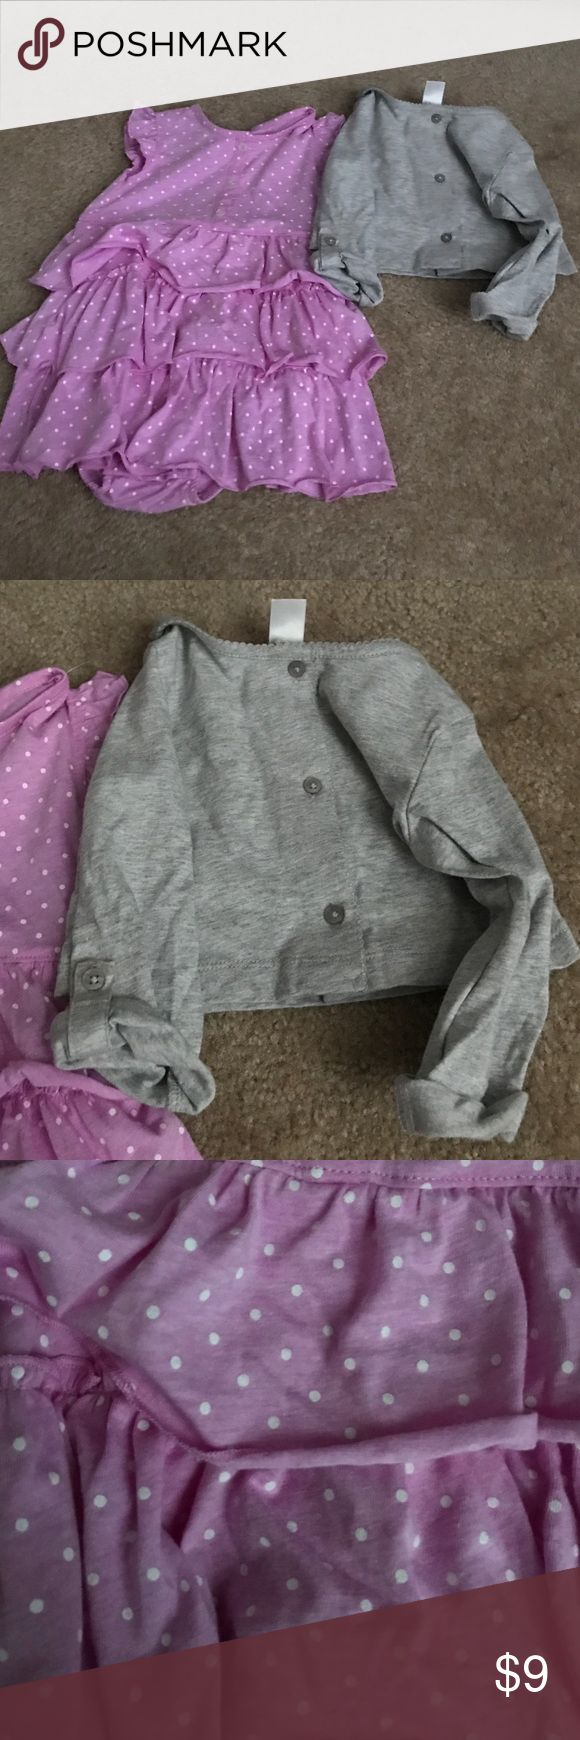 Carters two piece nwt dress NWT carters dress 24 months Purple and gray sfpf home Carter's Dresses Casual